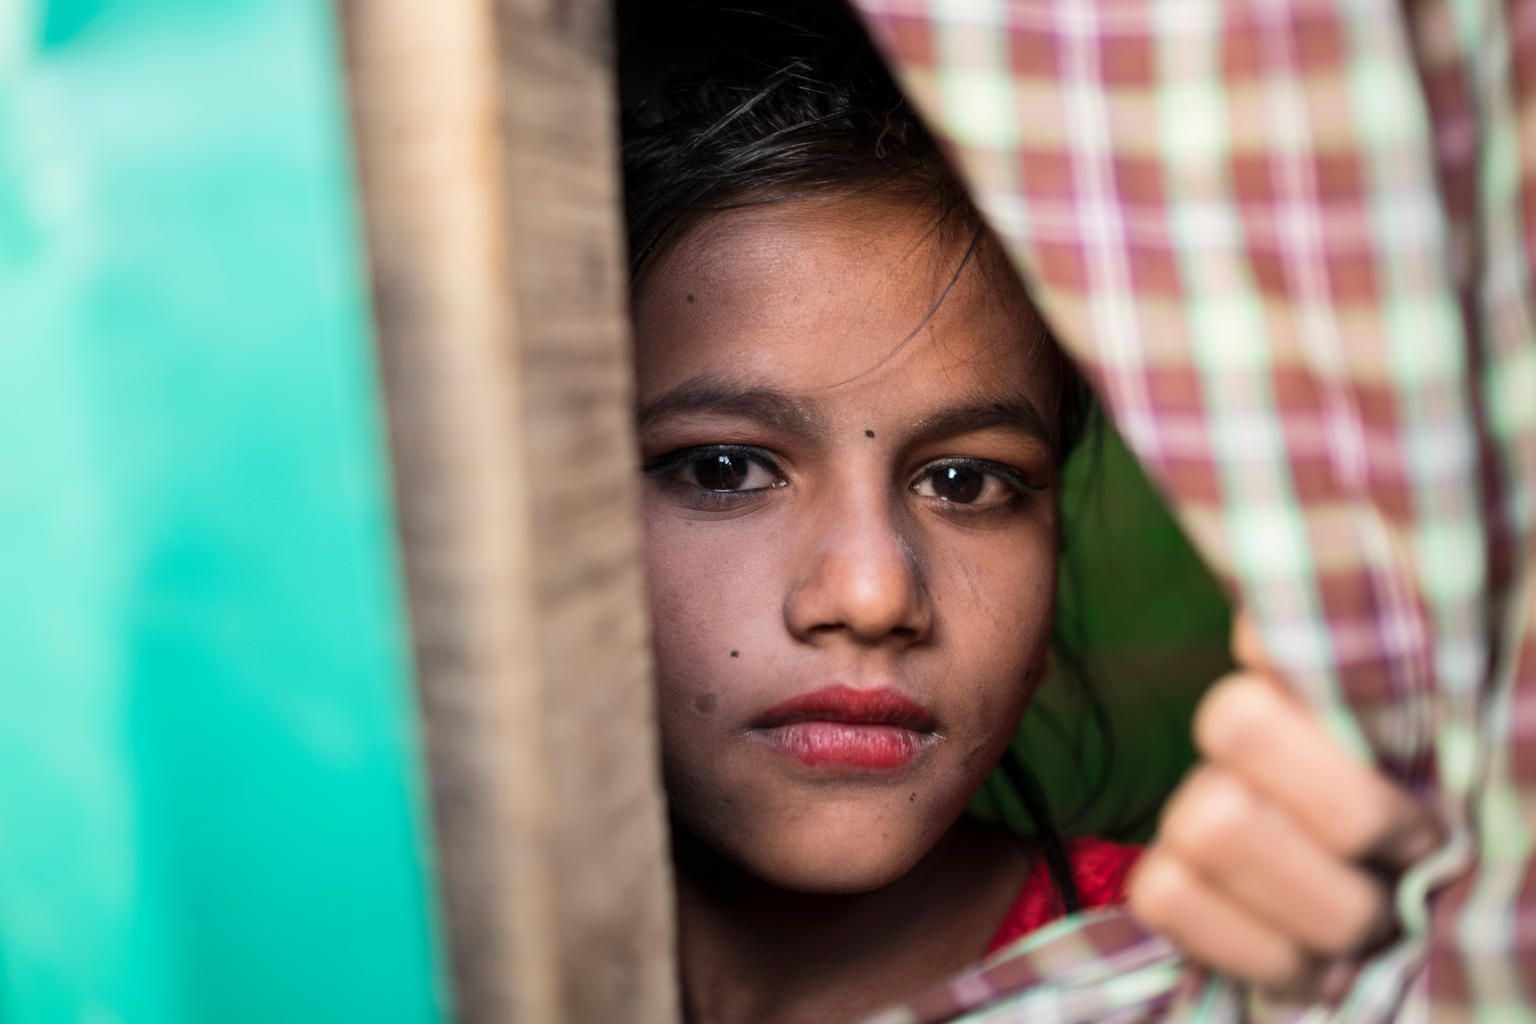 A young lady peers through from behind a curtain she has held open.